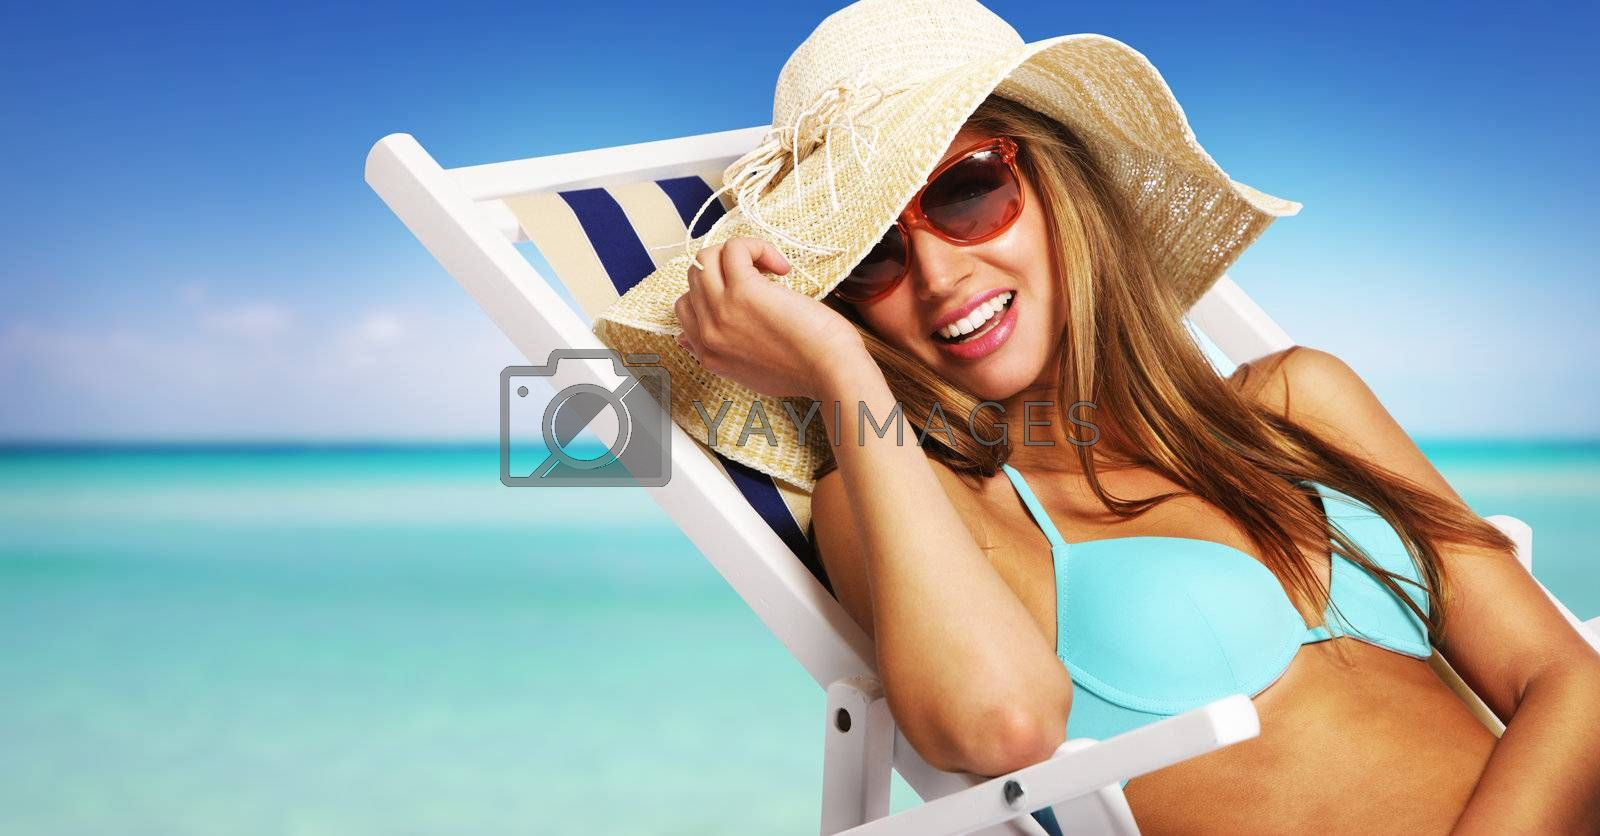 Smiling young woman relaxing on beach chair